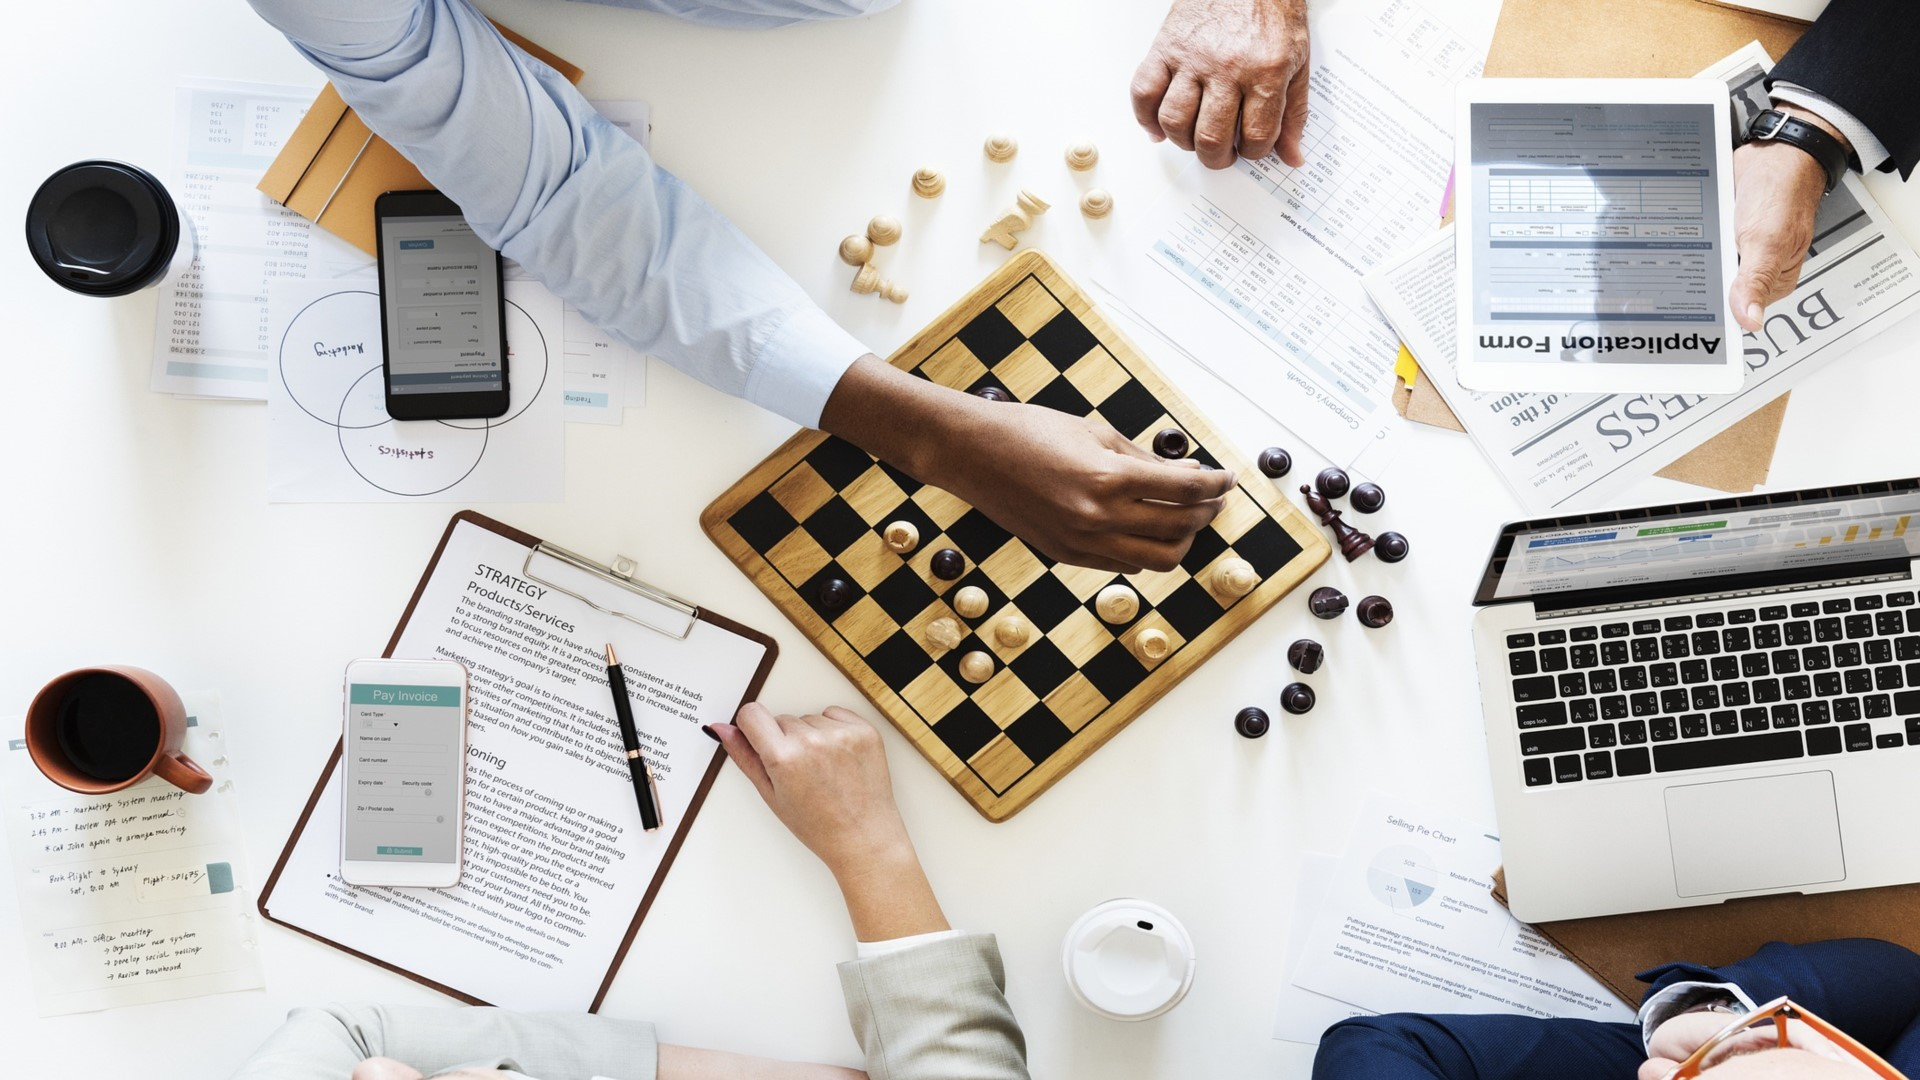 In omnichannel marketing, all possible outcomes have to be taken into consideration, as in chess.